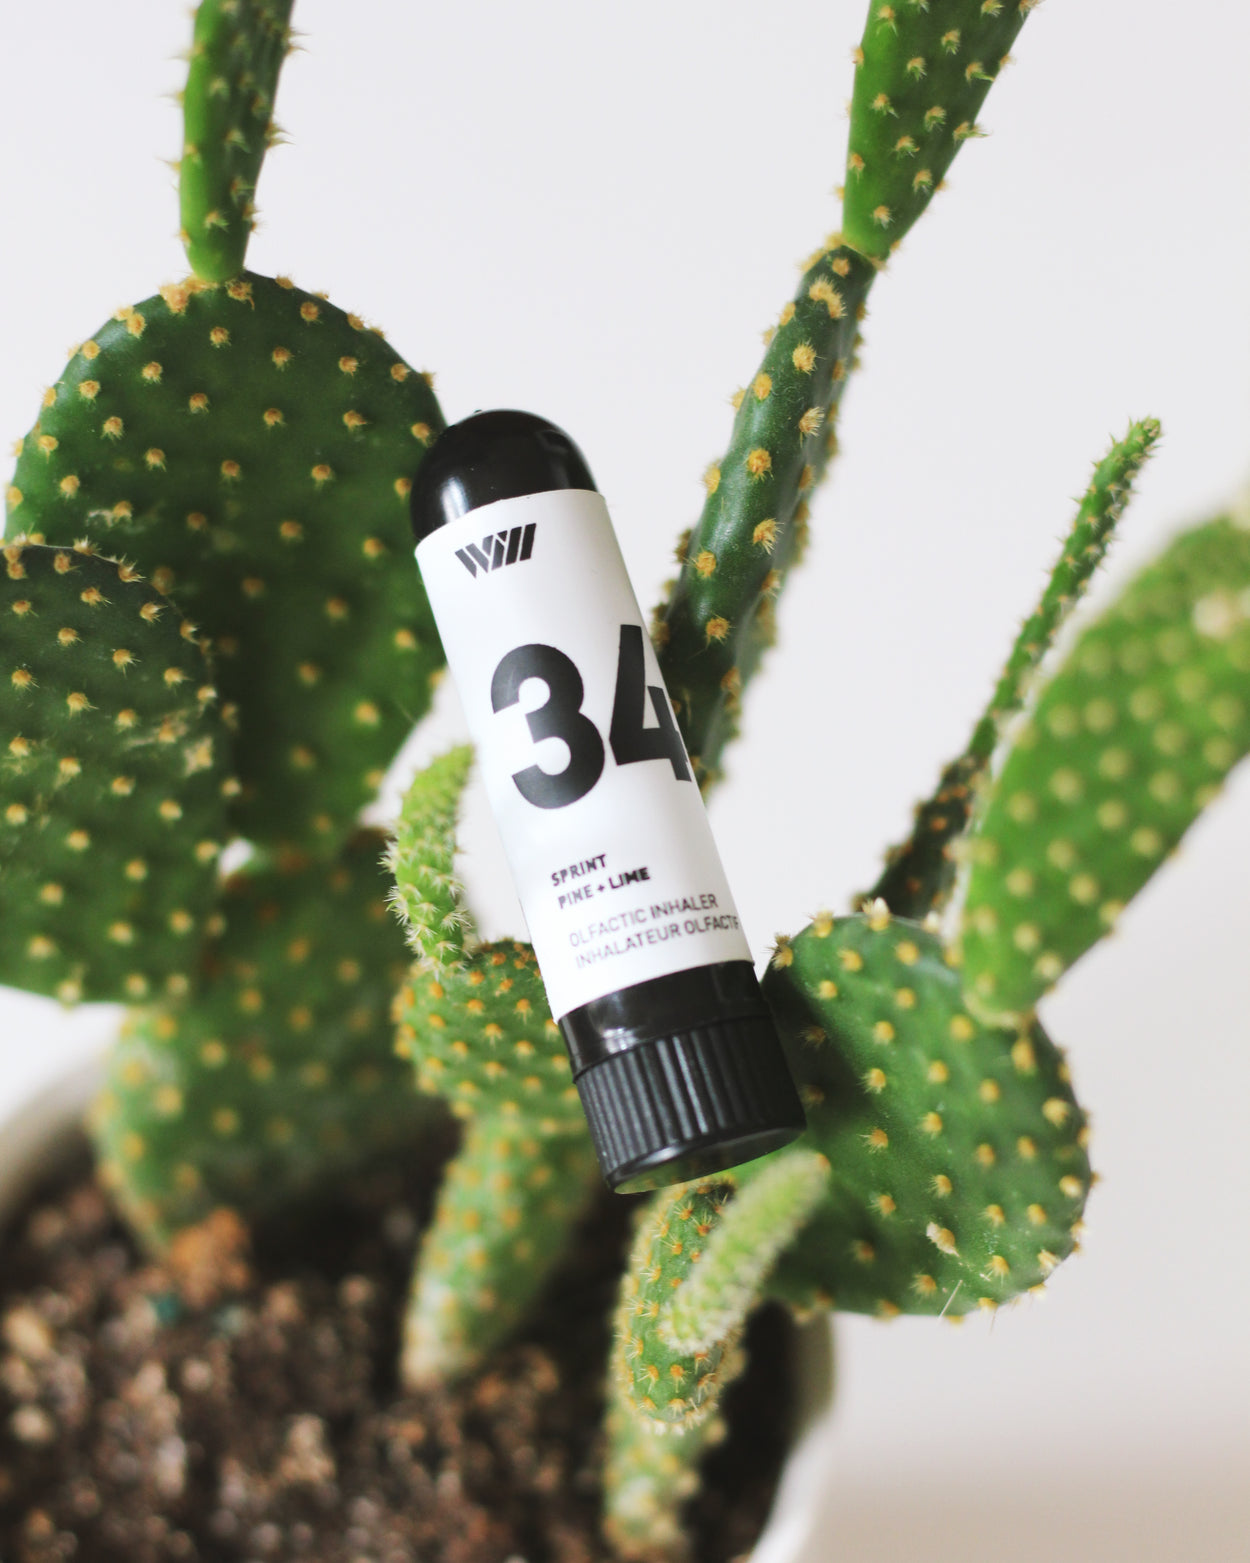 34 Sprint | Olfactic Inhaler | Pine + Lime